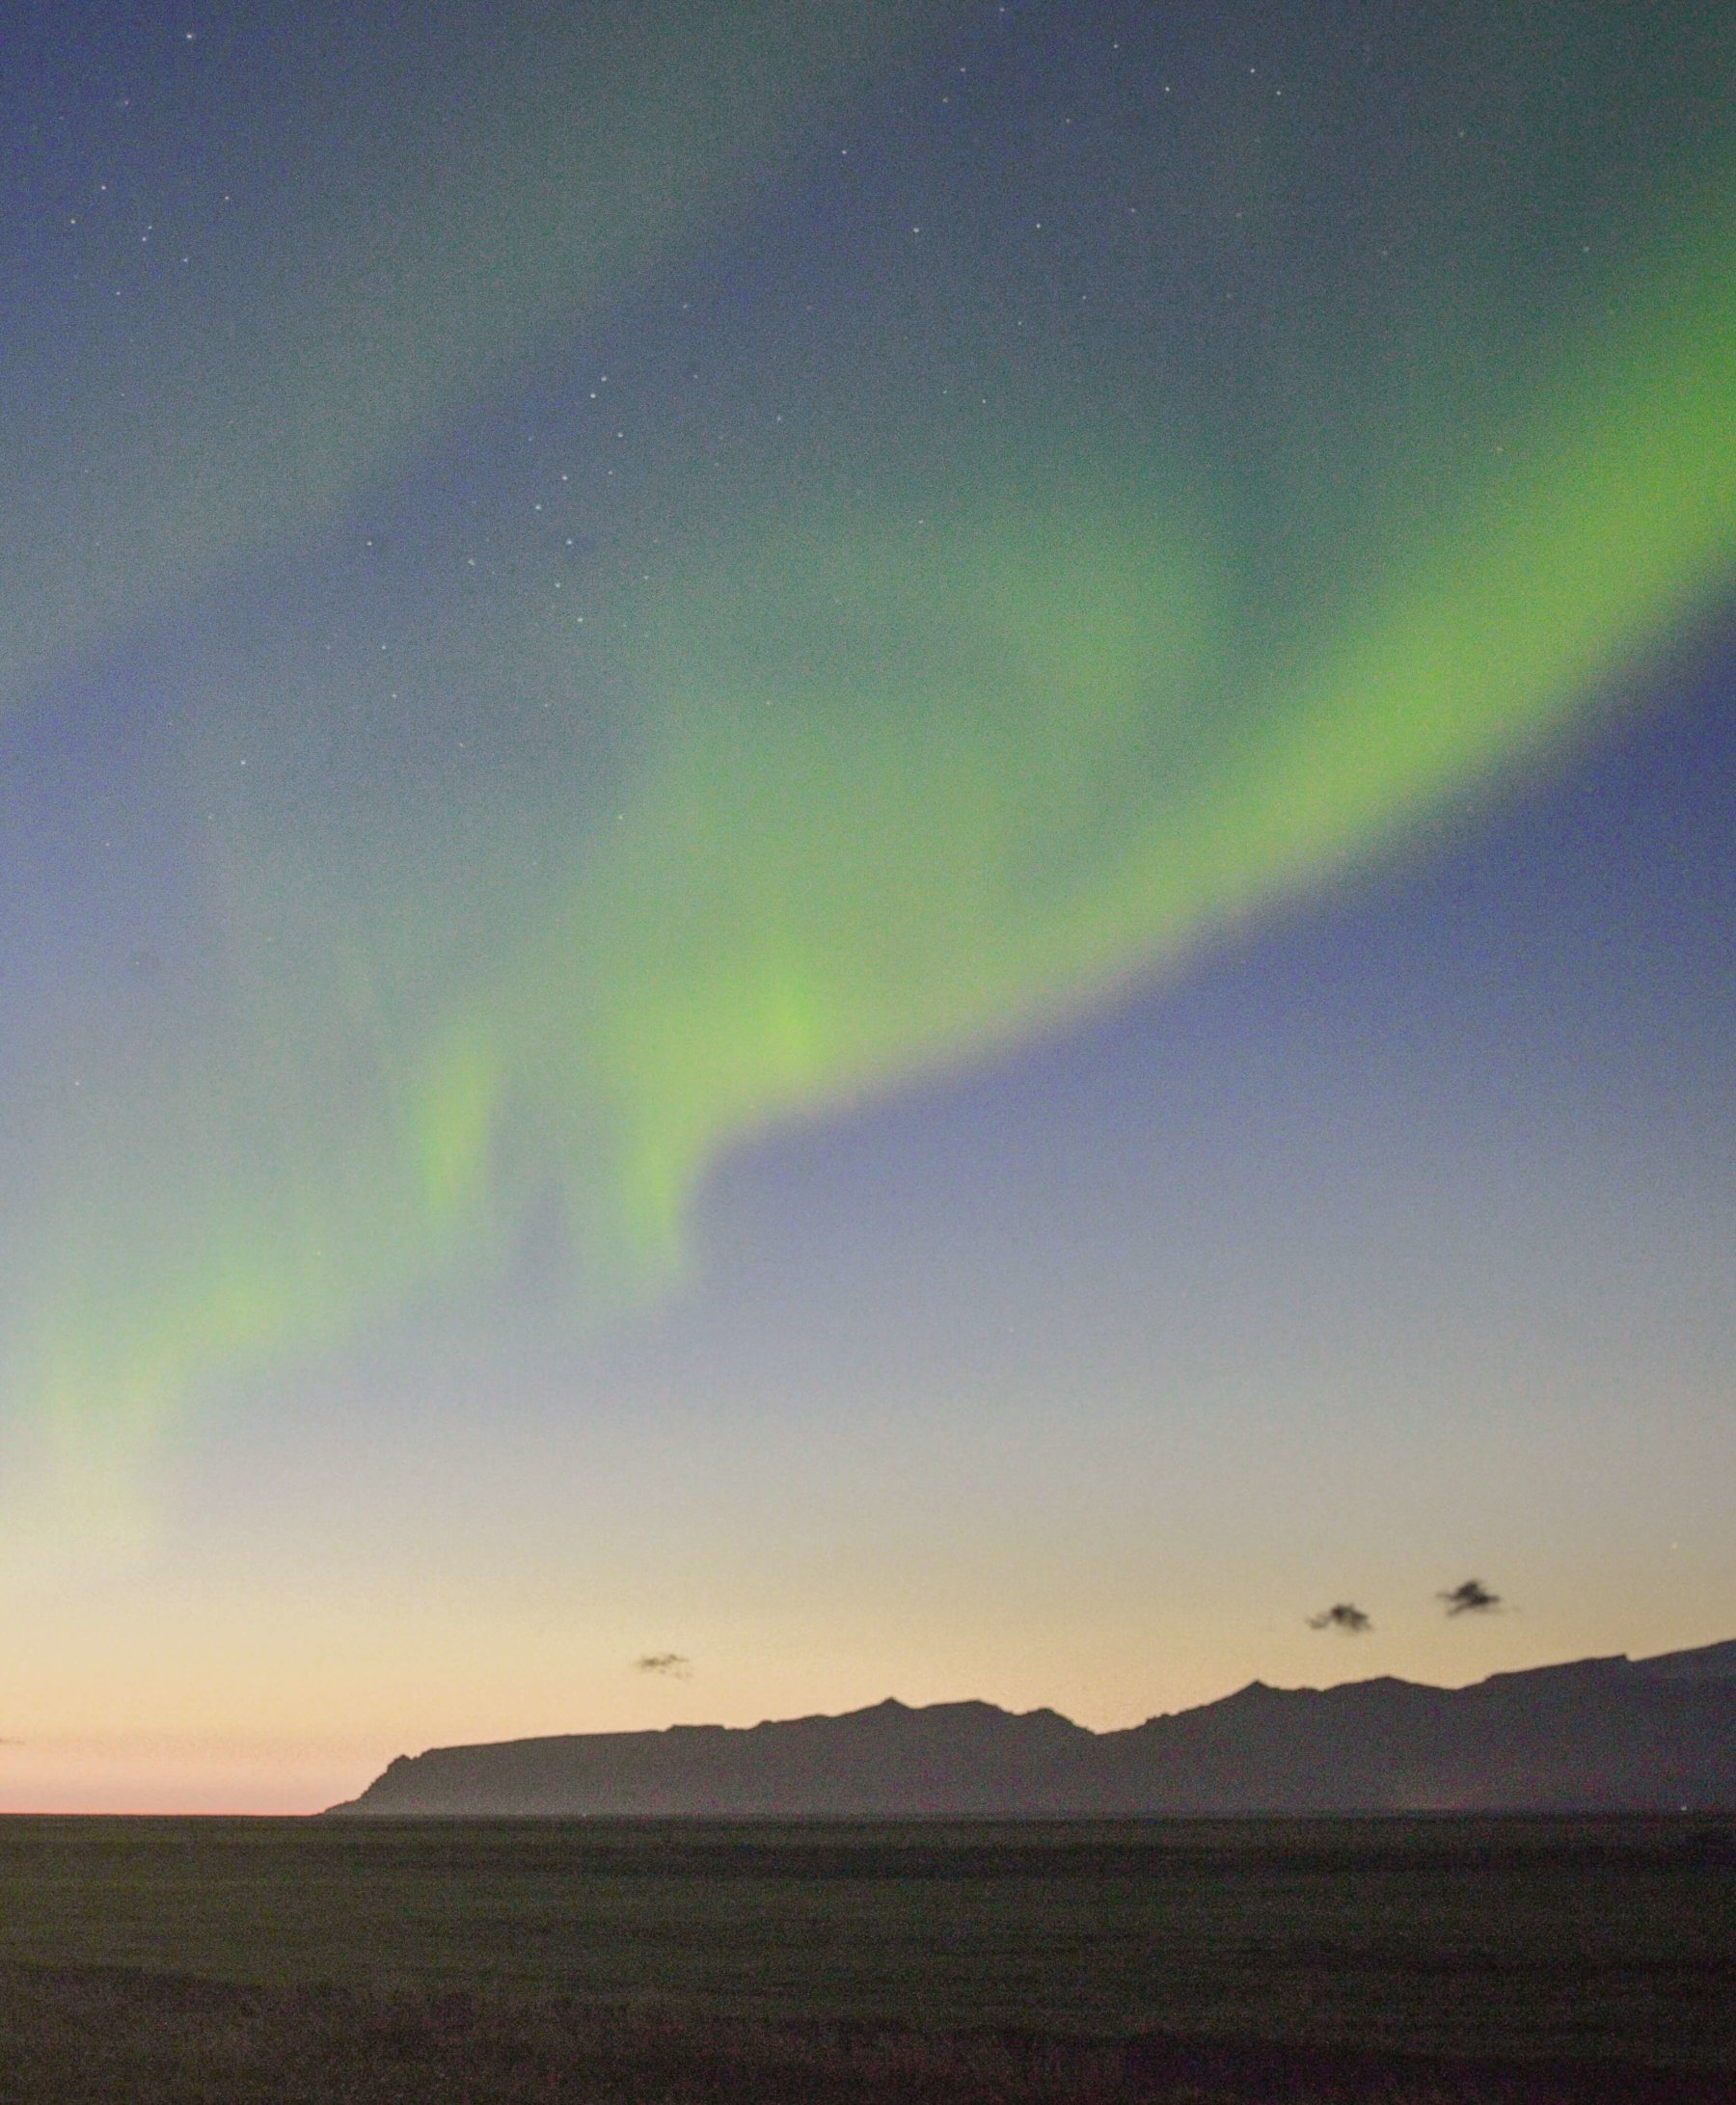 HOW TO EXPERIENCE THE NORTHERN LIGHTS